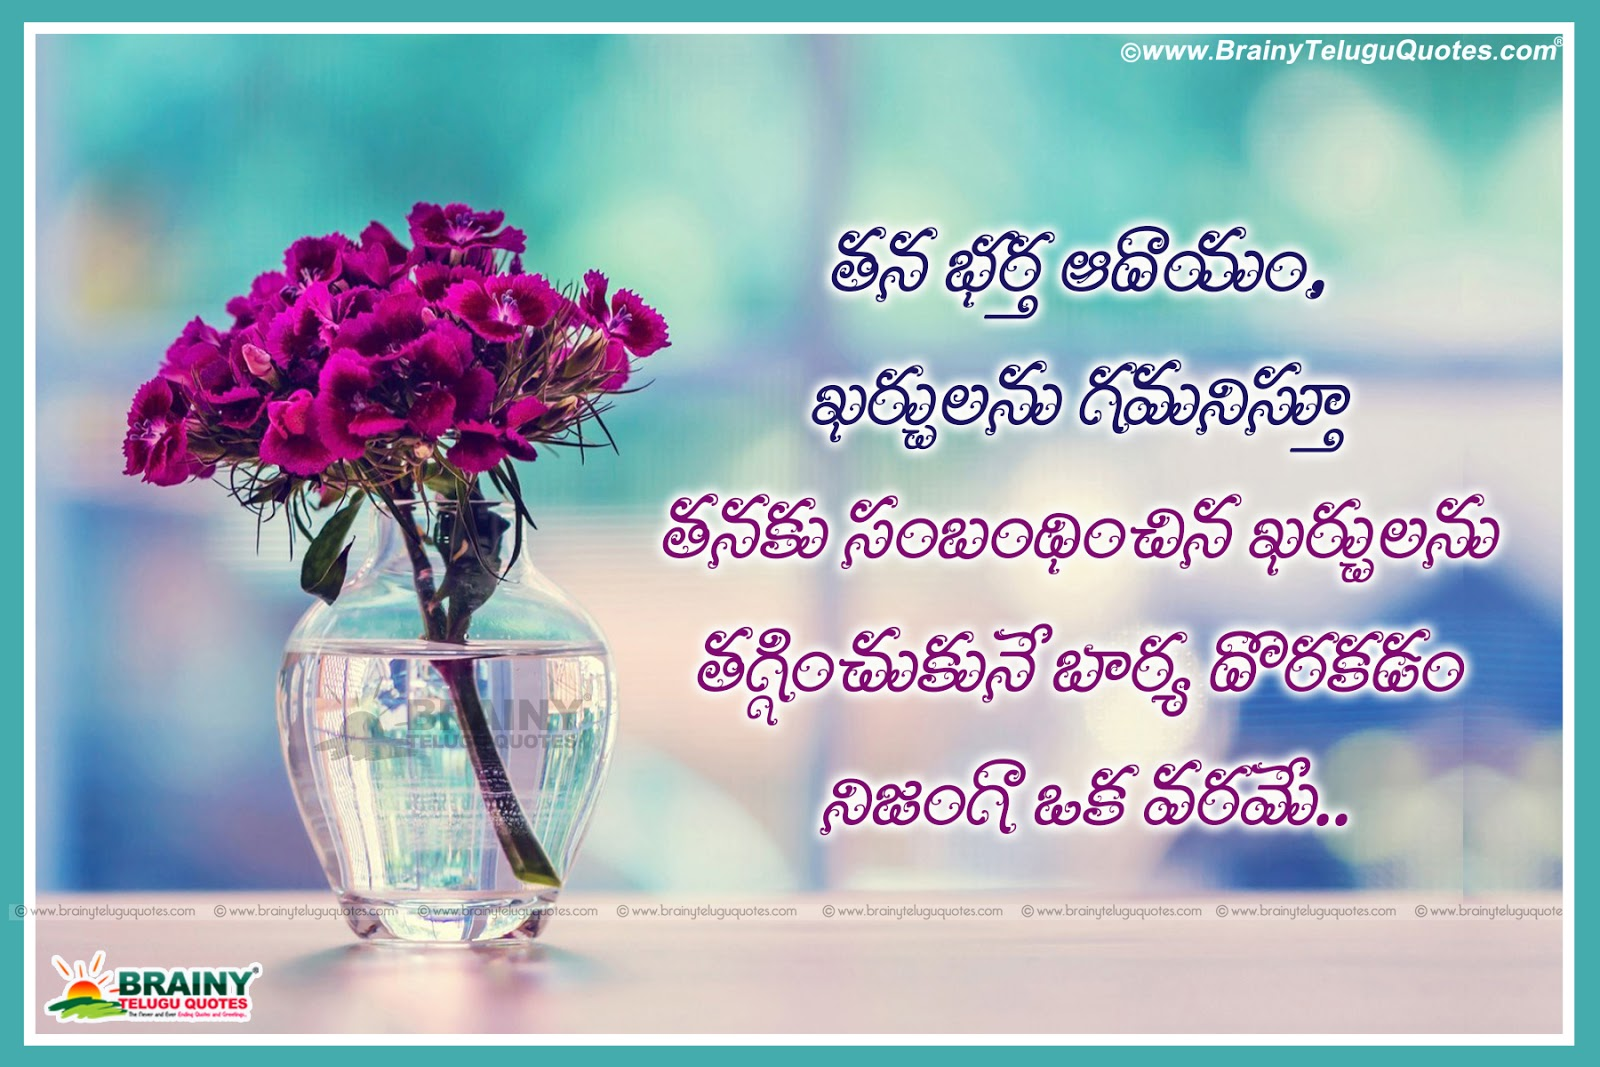 Best Meaning Of Wife In Telugu-Telugu Wife Value Quotes